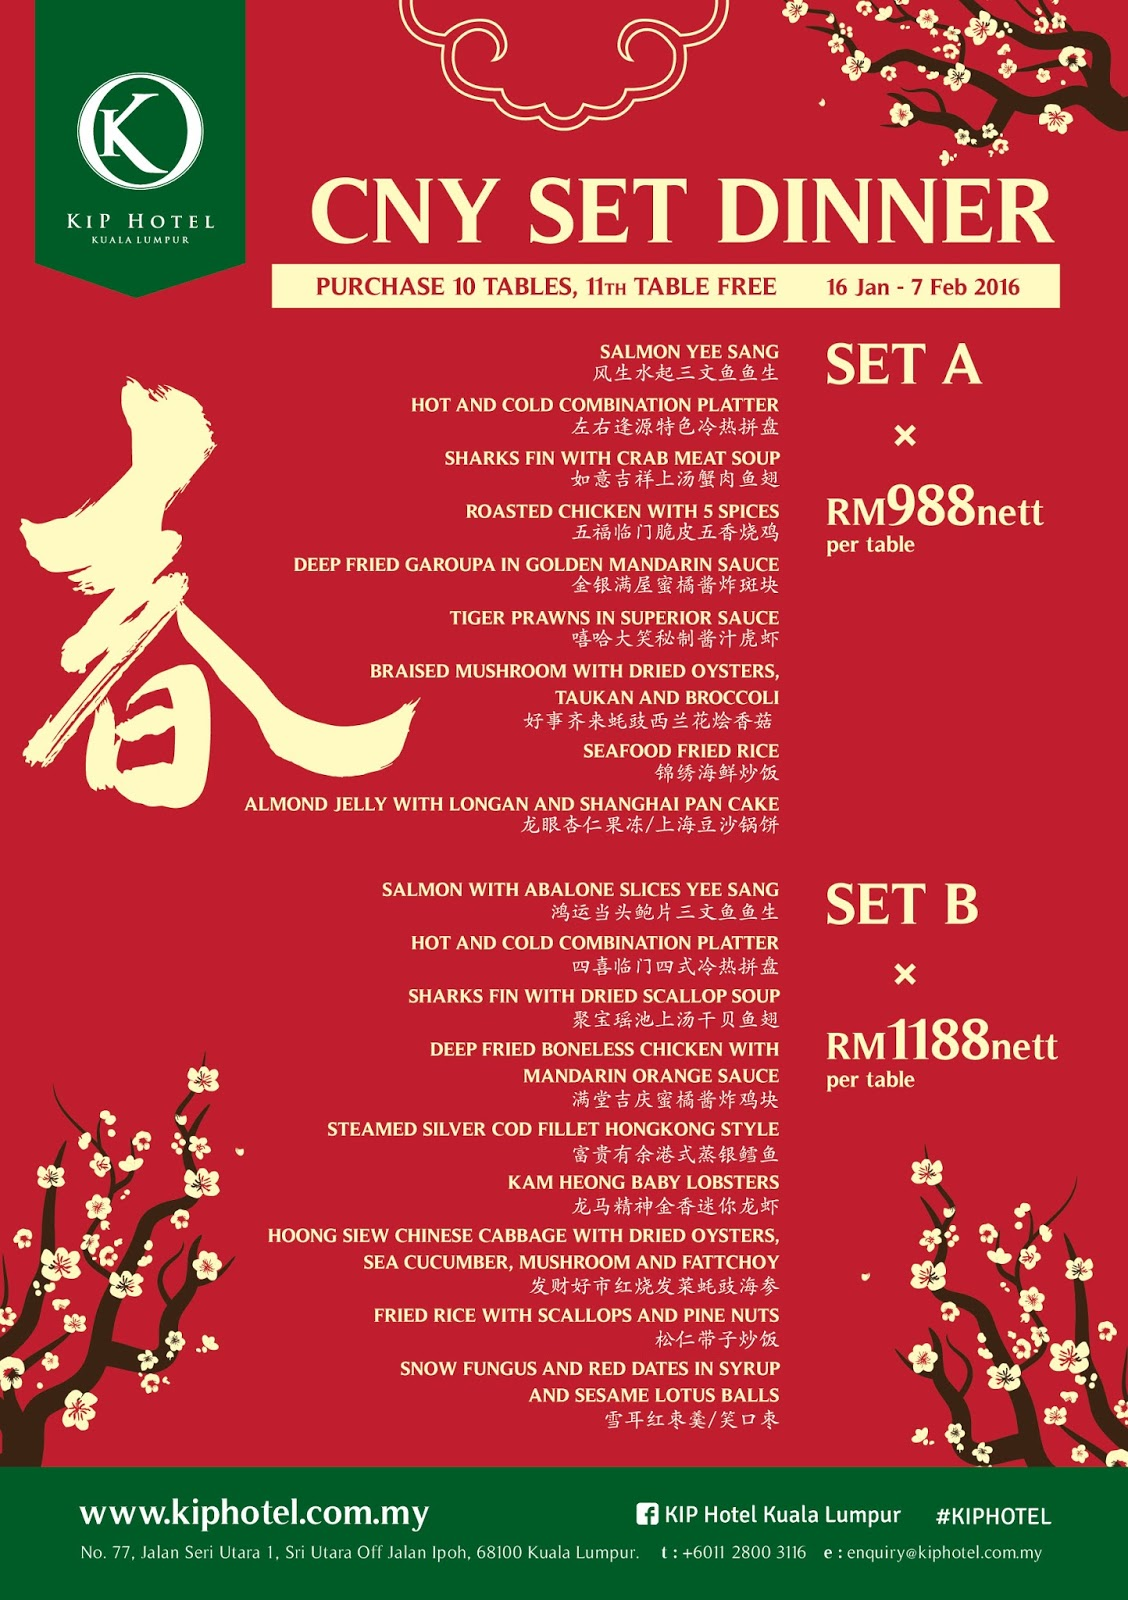 kip hotels 2016 chinese new year set menu will feature a selection of two exquisite nine course dinner menus set menu a priced at rm988nett and set menu b - Chinese New Year 2016 Date